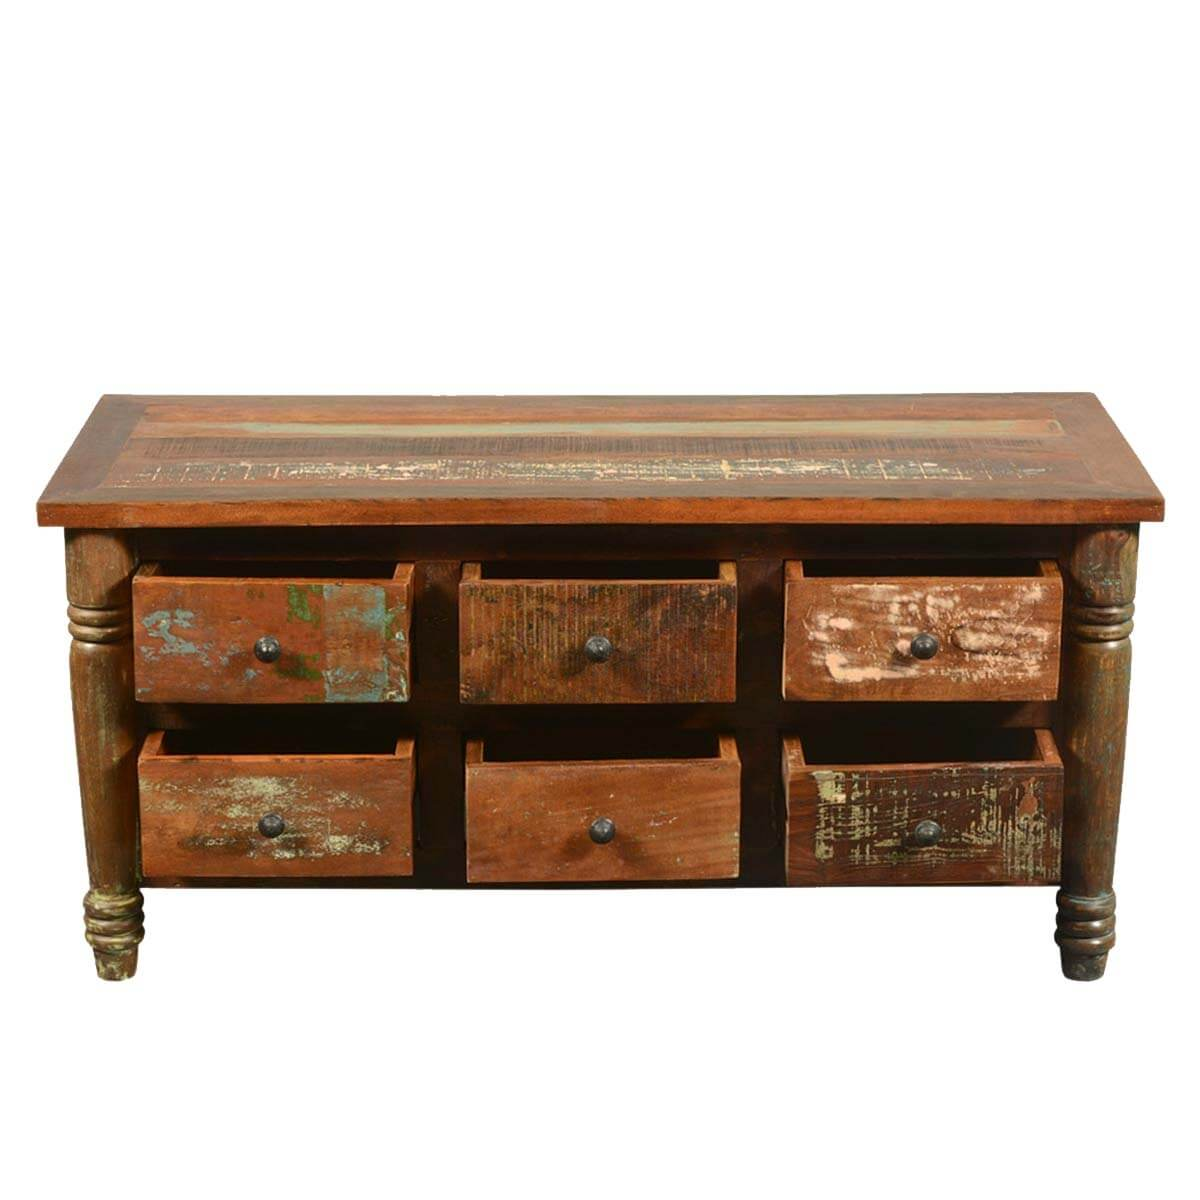 Superb img of  Appalachian Rustic Reclaimed Wood Coffee Table Chest of Drawers with #B07A1B color and 1200x1200 pixels